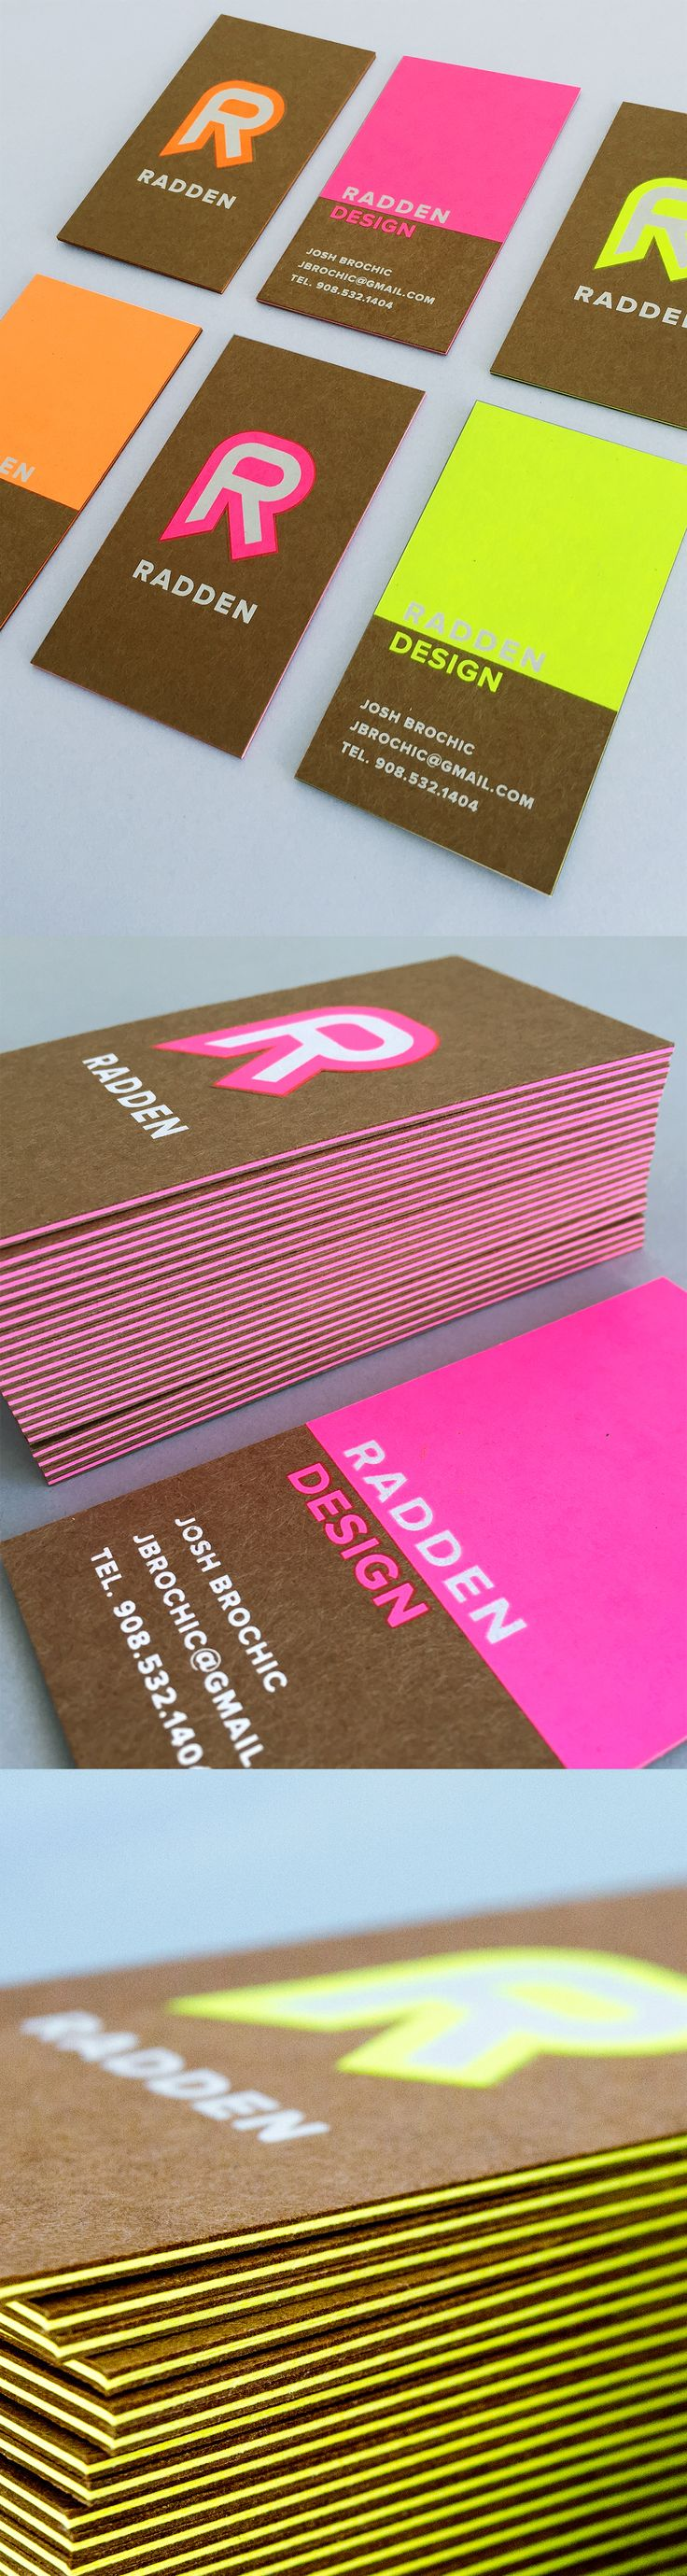 3ply Brown Kraft Business cards printed with White and Neon Inks. Produced by Jukebox Print